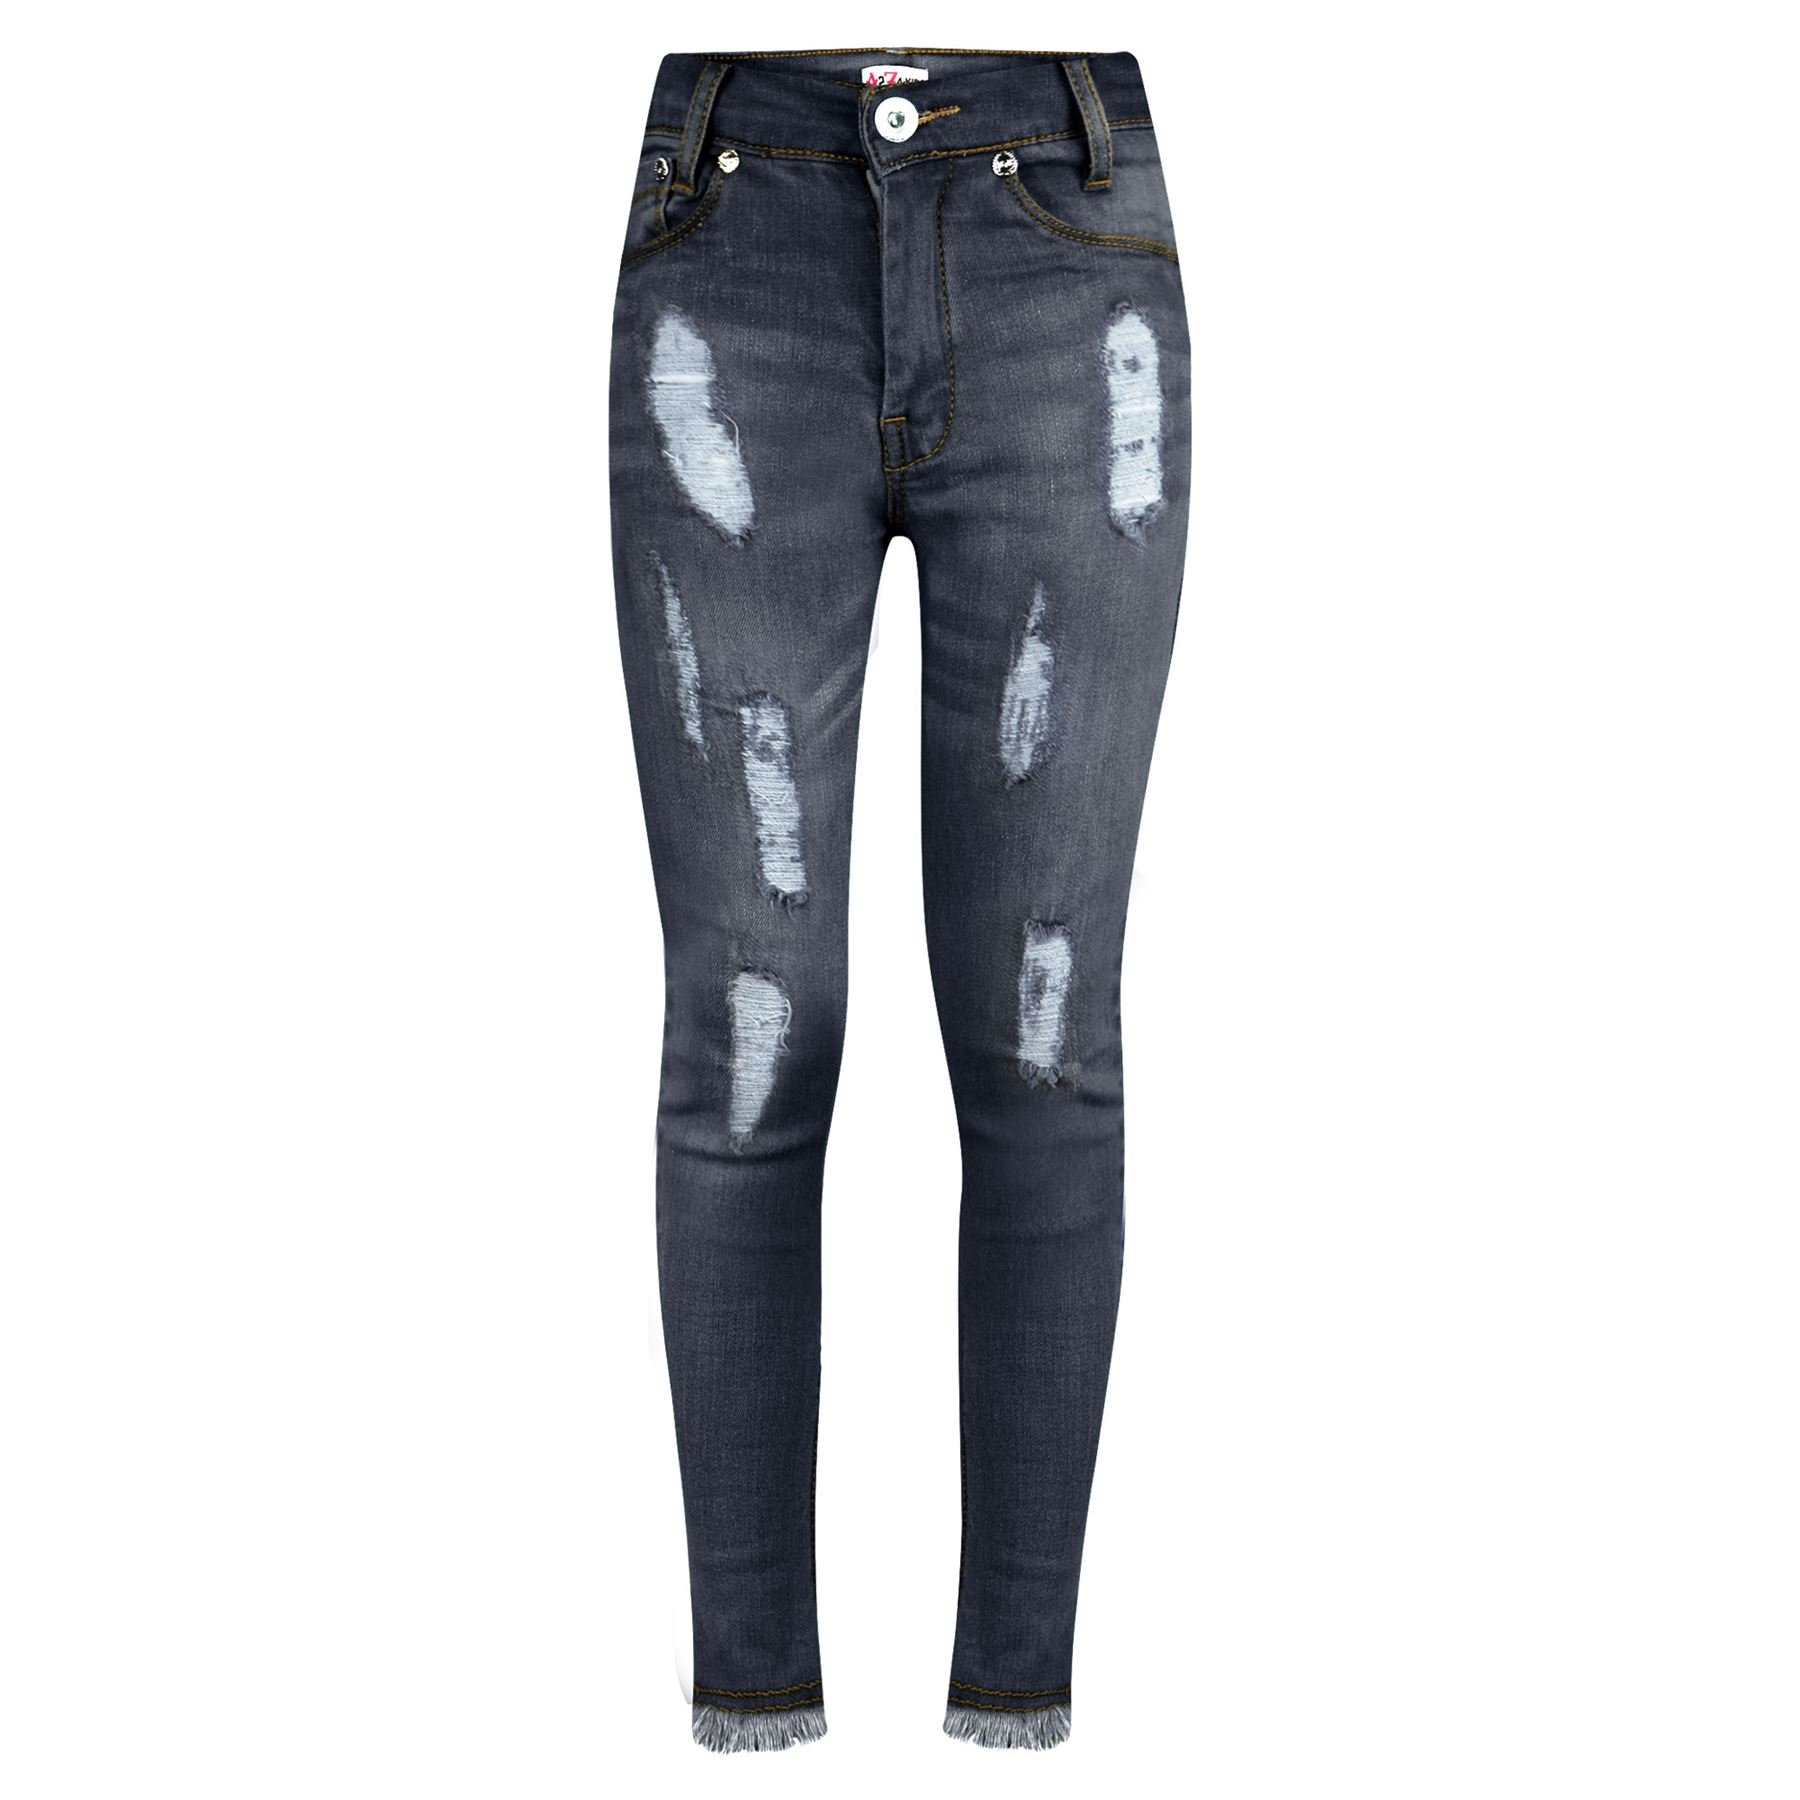 Girls Stretchy Jeans Kids Ripped_GJ01 Denim Pants Trousers Jeggings Age 5-13 Years